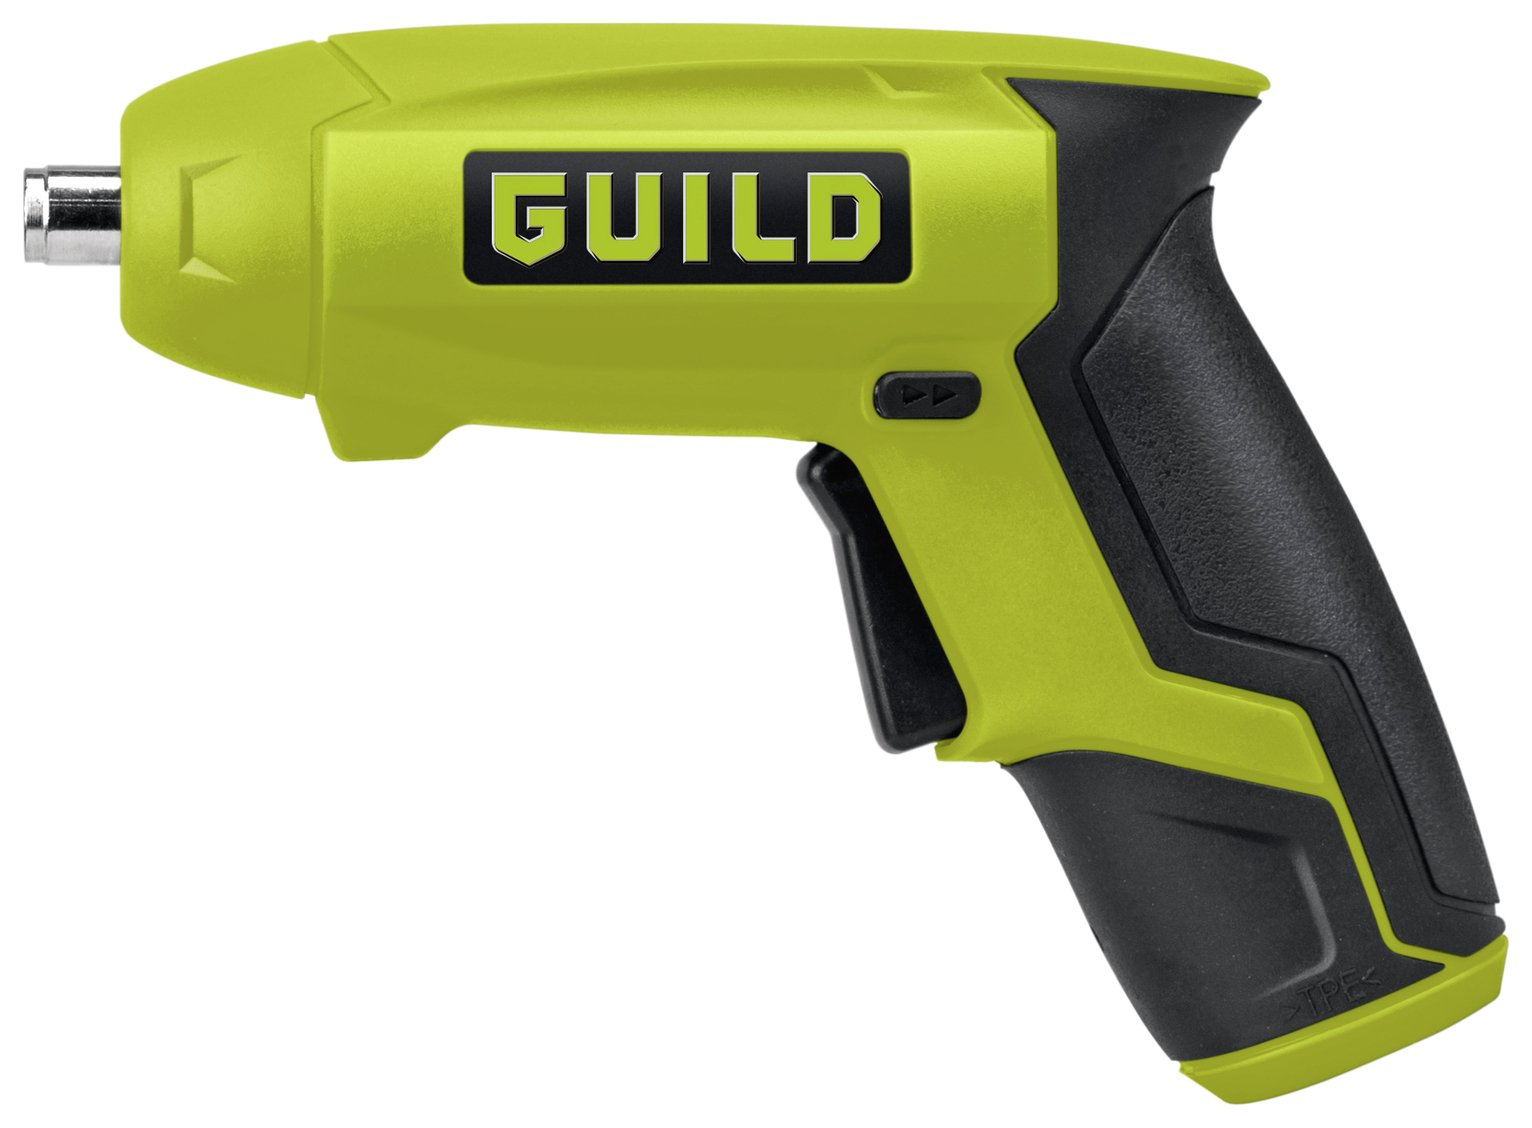 Guild - Cordless Li-Ion Screwdriver - 36V lowest price